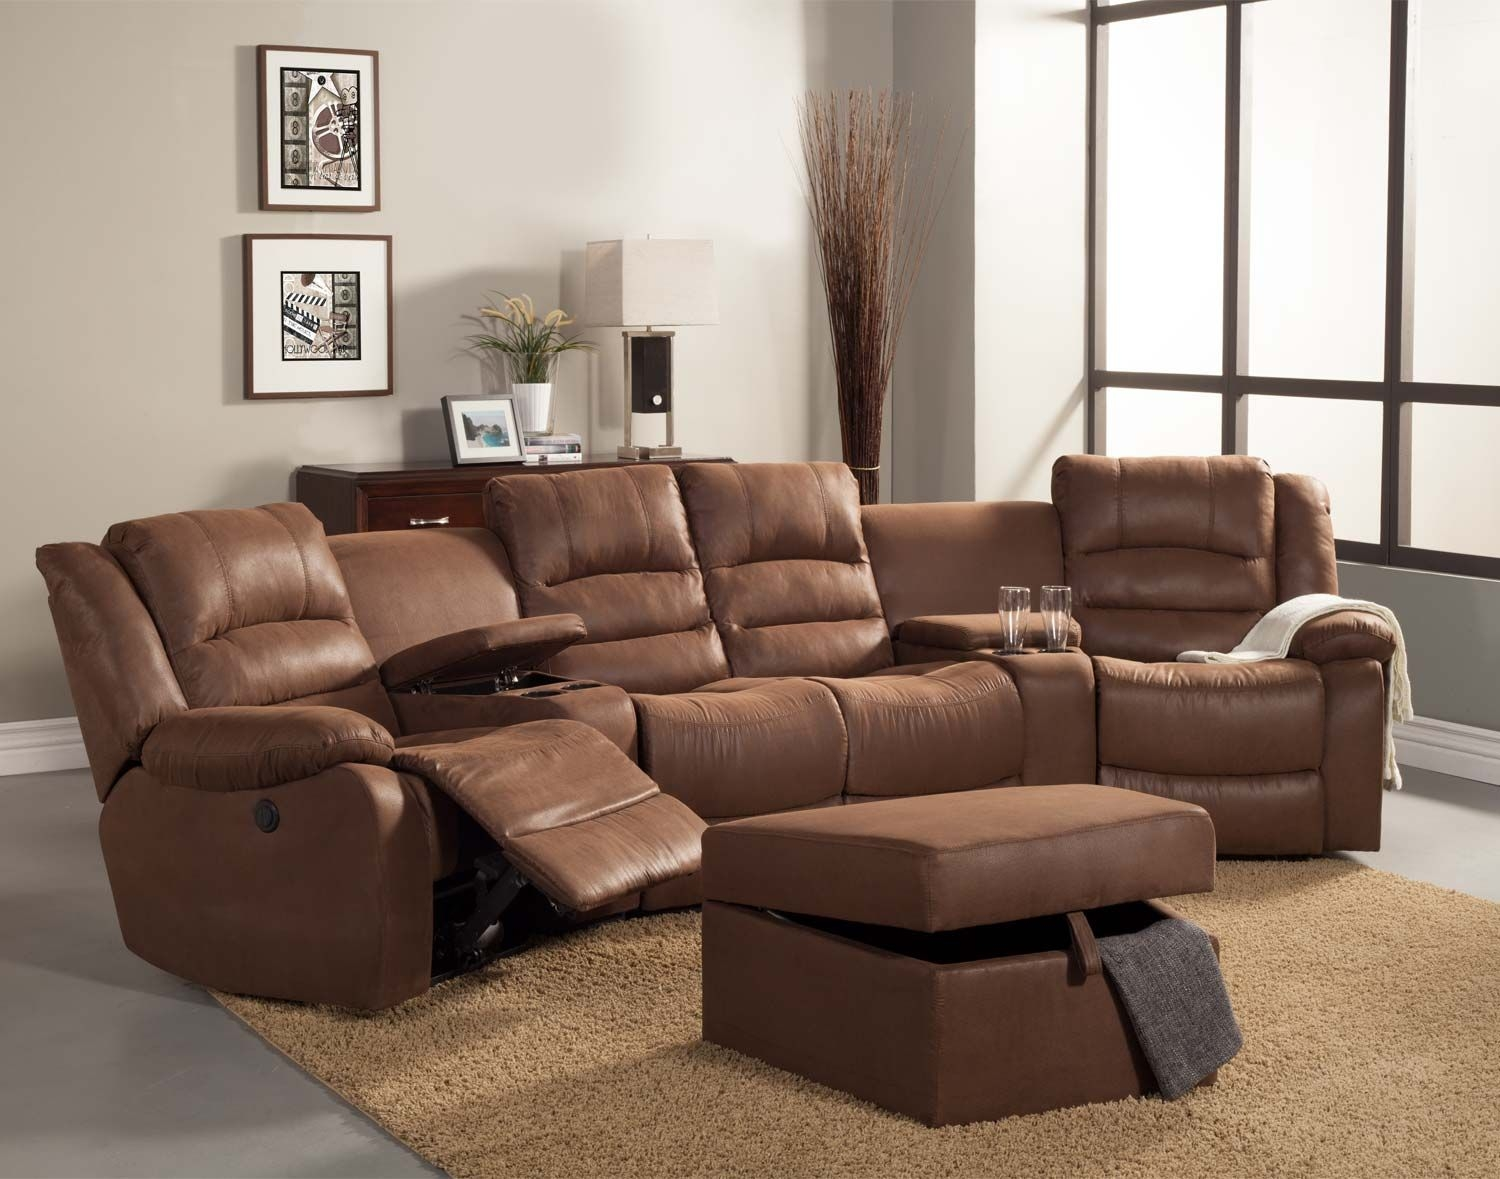 Superieur Buy Small Sofa Online: Small Reclining Sofa